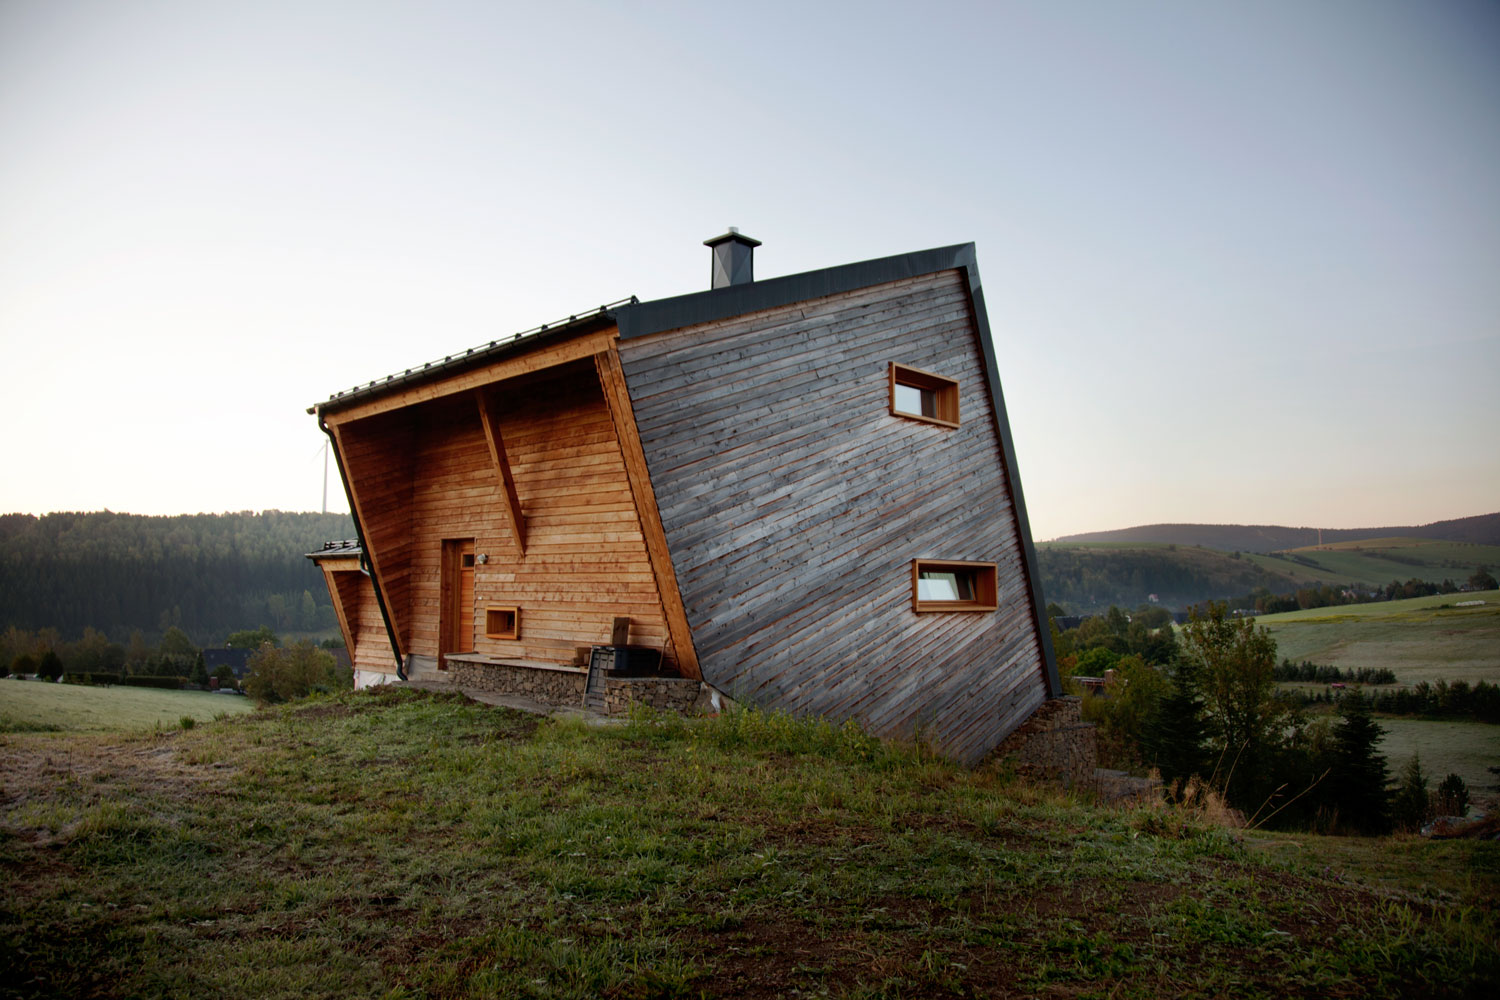 Geometric wood cabin in Oberwiesenthal, Germany